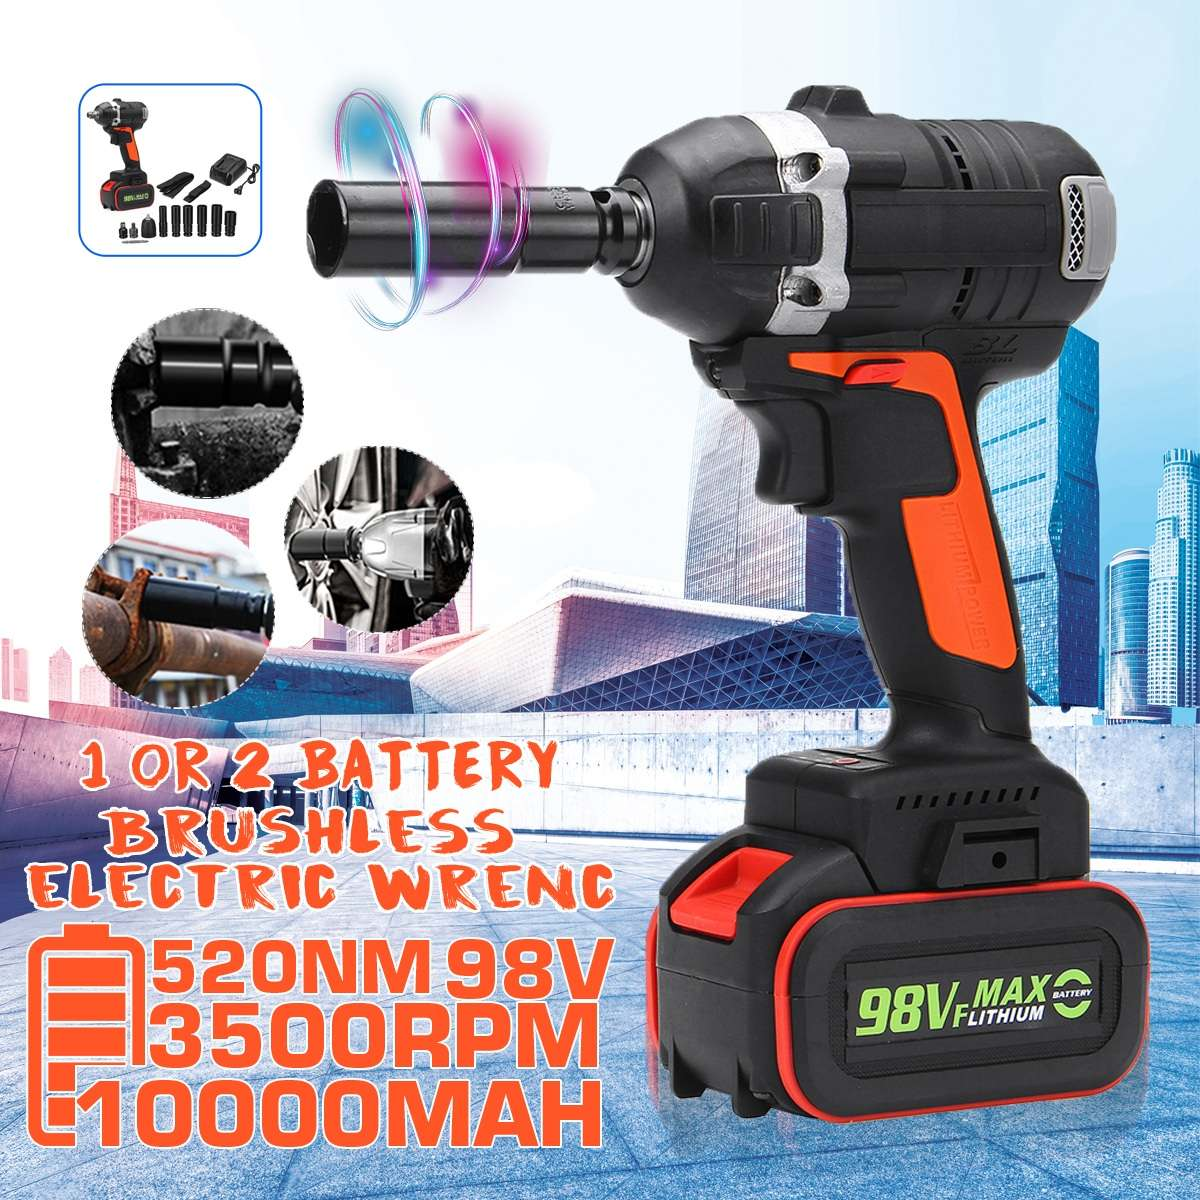 520nm 18v Electric Rechargeable Brushless Impact Wrench Cordless 1//2 Socket Wrench Power Tool for Universal Battery